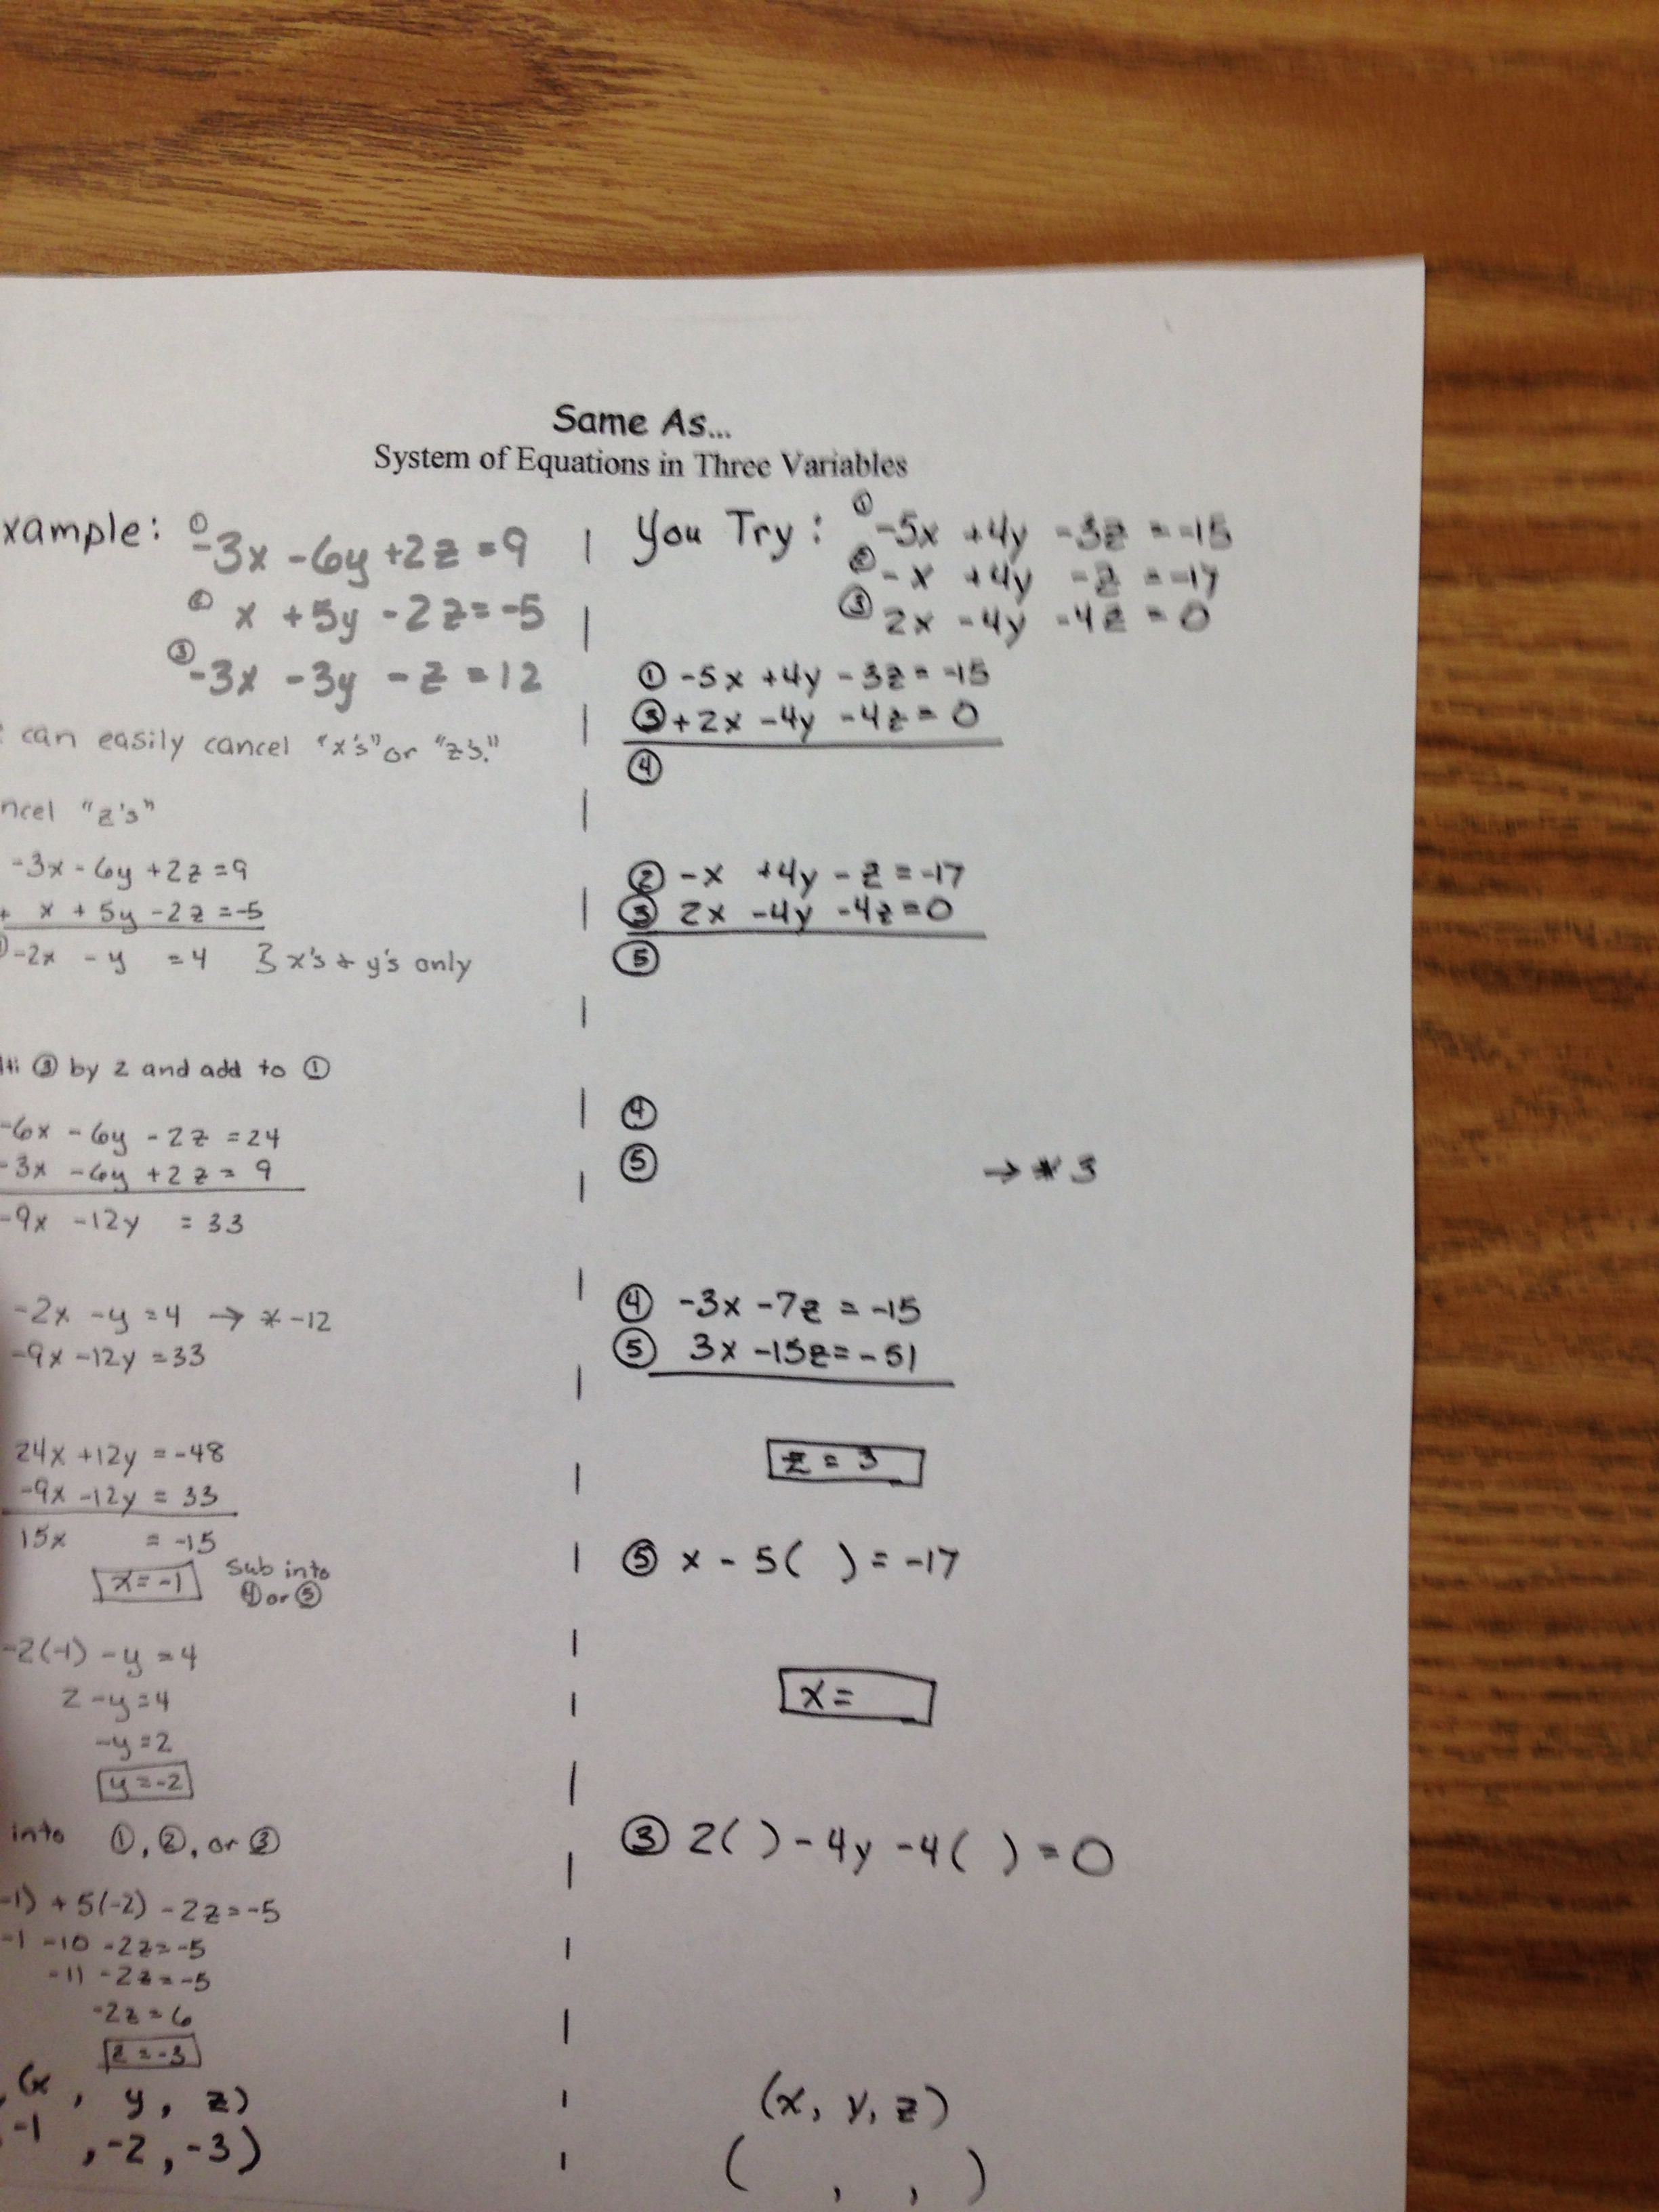 2 of 3 systems High school math, Systems of equations